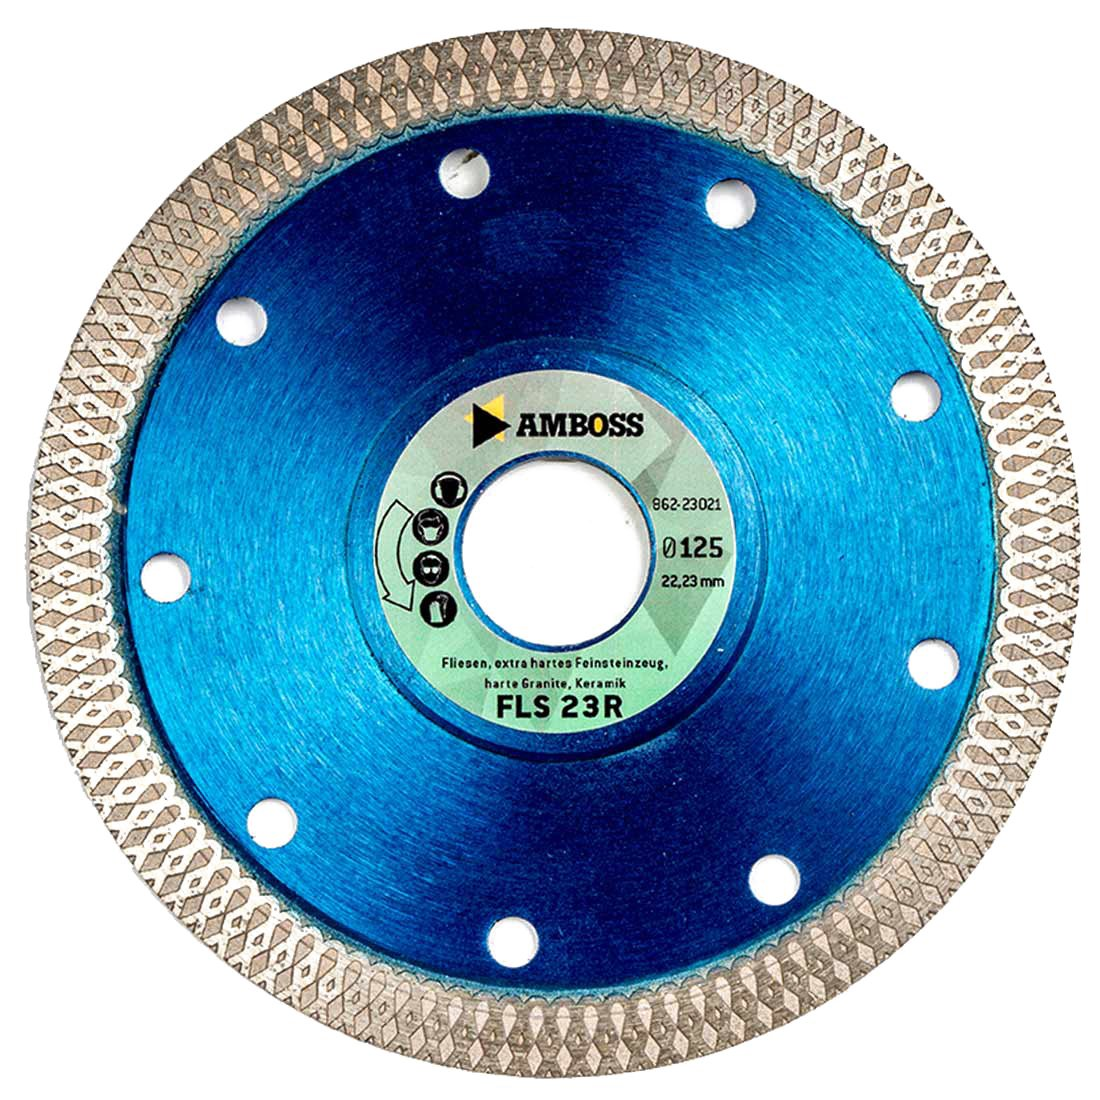 Amboss FLS 23R Revolution Ultra-Thin Diamond Cutting Disc 1.2 mm for Tiles/Extra-Hard Porcelain Stoneware/Hard Granite/Ceramic Different Diameters Available, Hole: 22.2 mm, Segment Height: 10 mm, Ø 115 mm x 22,2 mm, 1